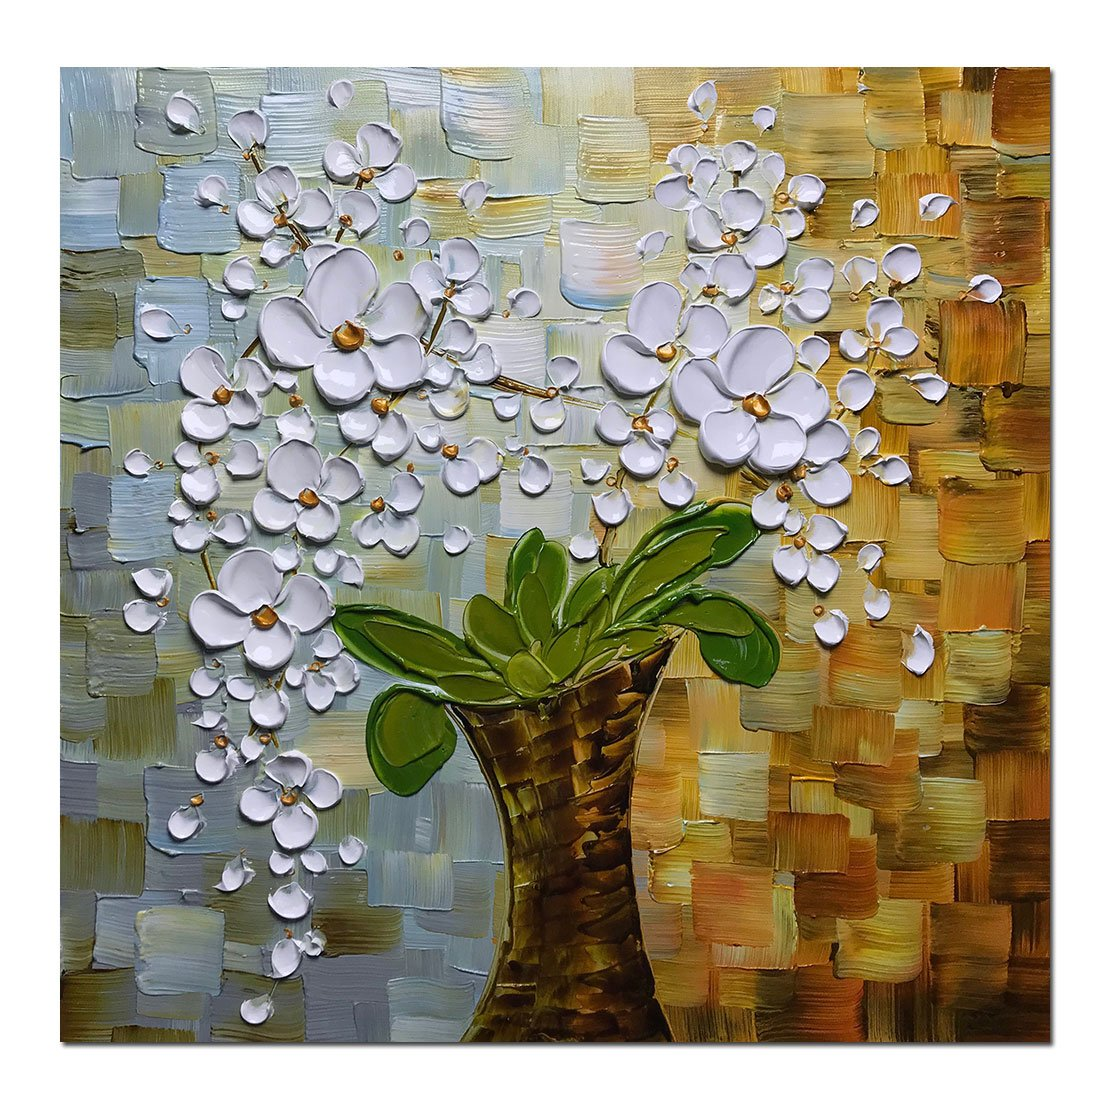 Asdam Art - 100% Hand-Painted 3D Paintings Beauty of Life Modern Wall Art for Dinning Living Room Bedroom Flower Artwork Abstract Pictures Floral Oil Painting on Canvas(24X24inch)